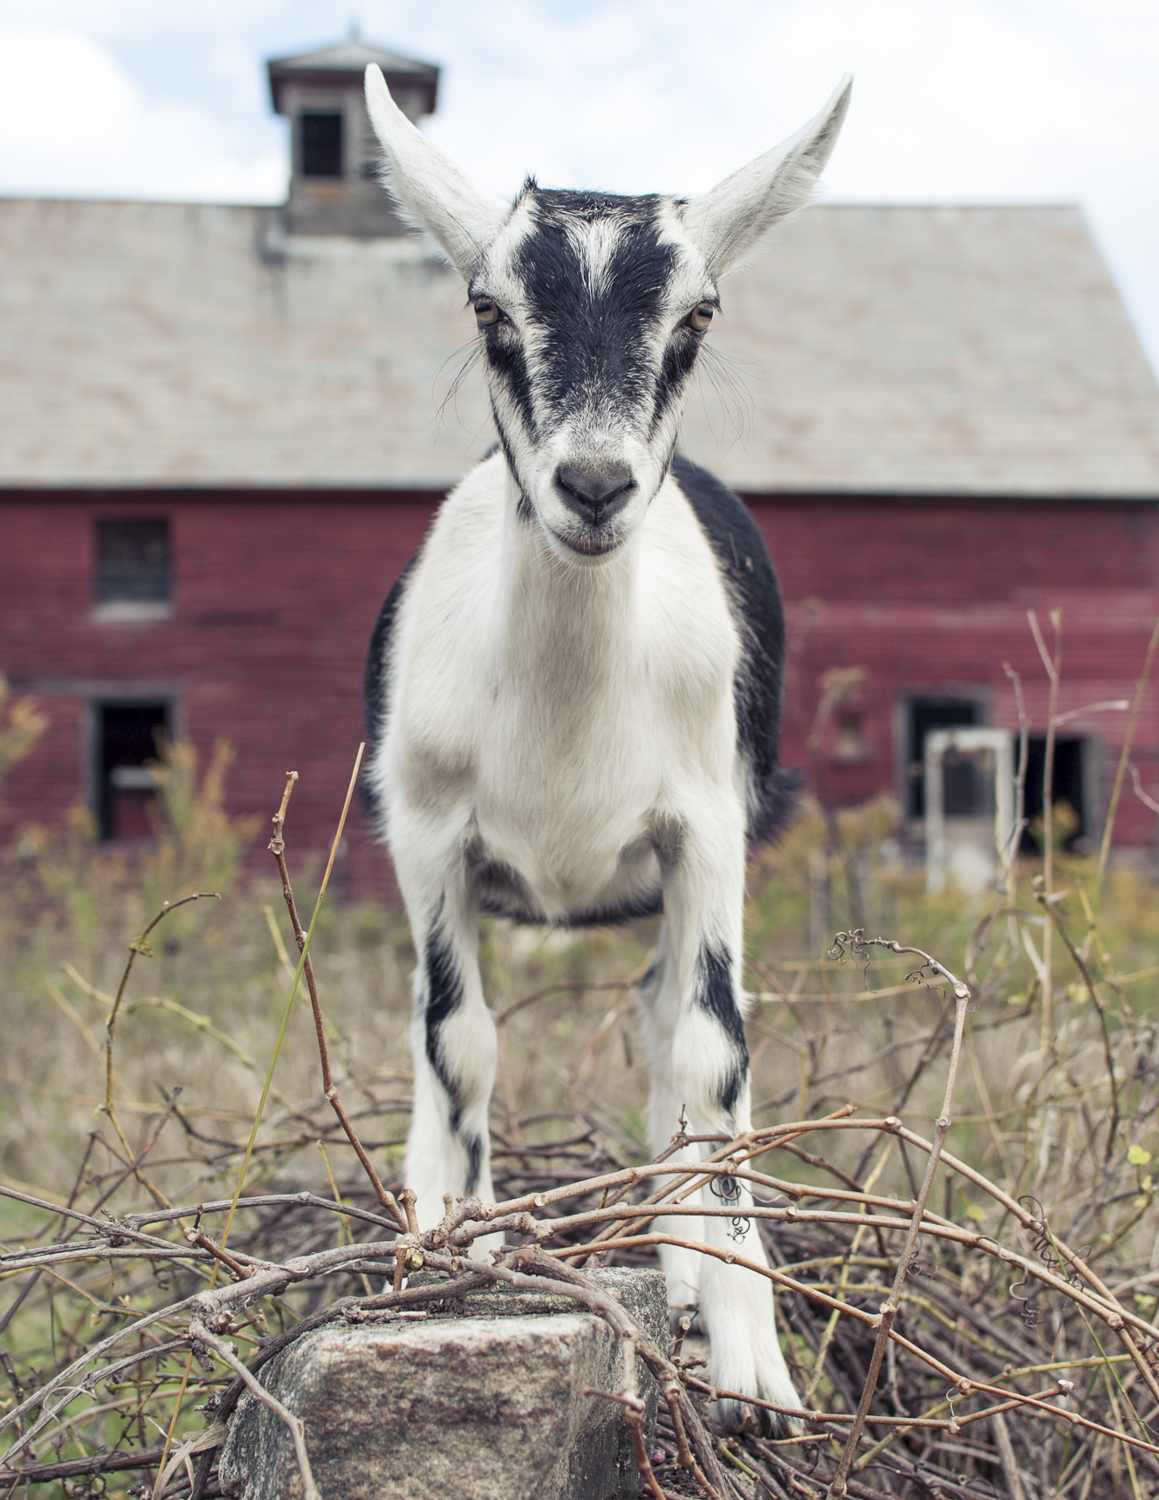 Veda the goat, at Ice House Farm.